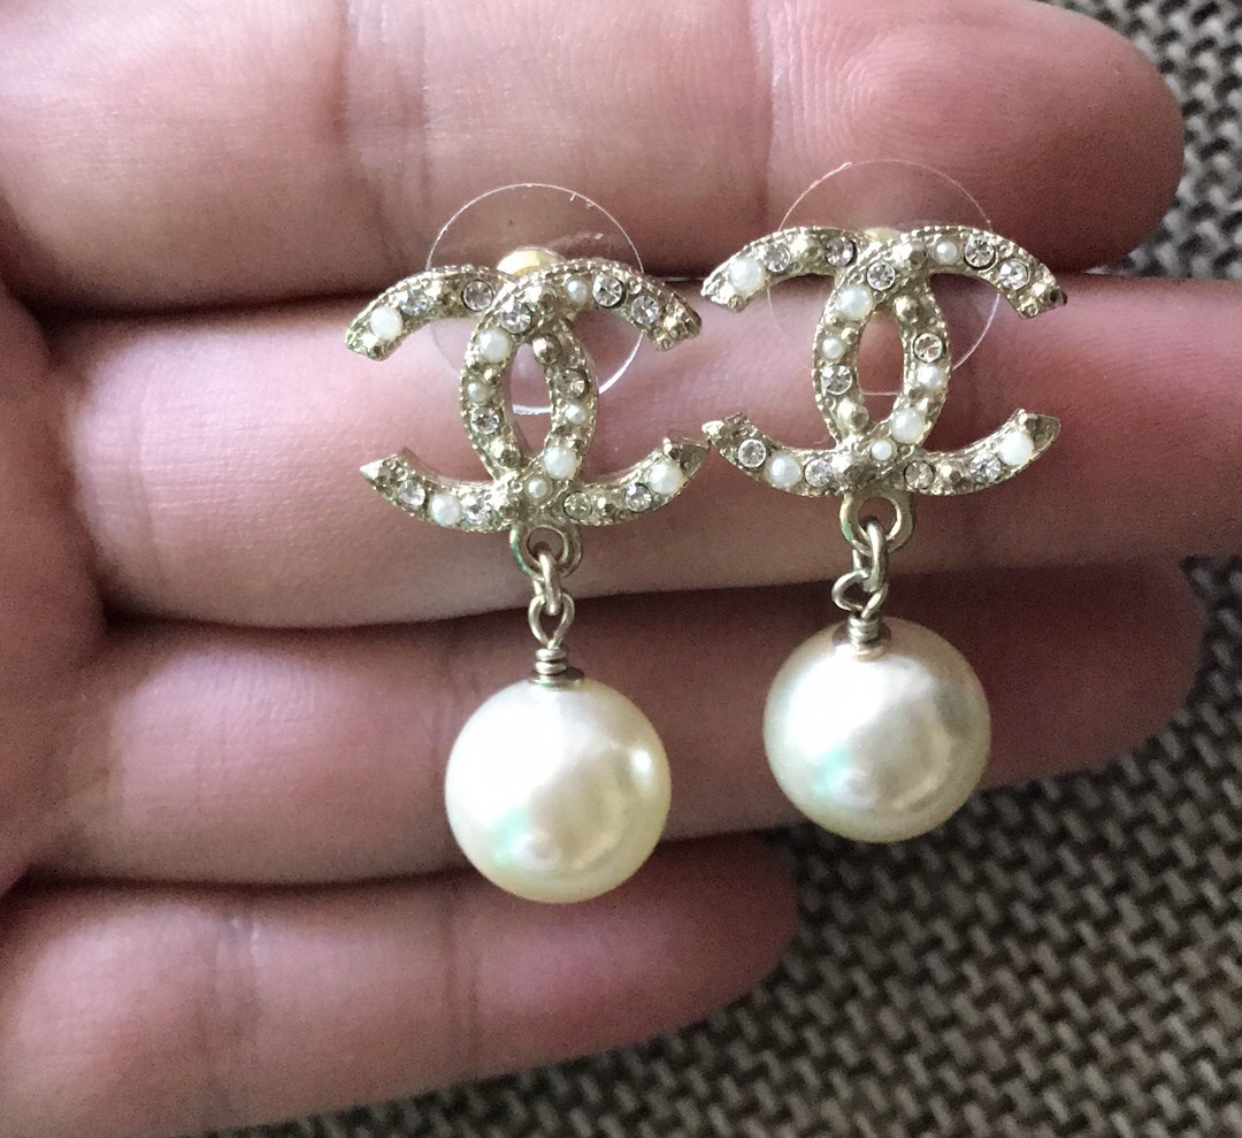 Authentic NEW CHANEL 2018 Classic Crystal CC Logo Pearl Drop Earrings Gold